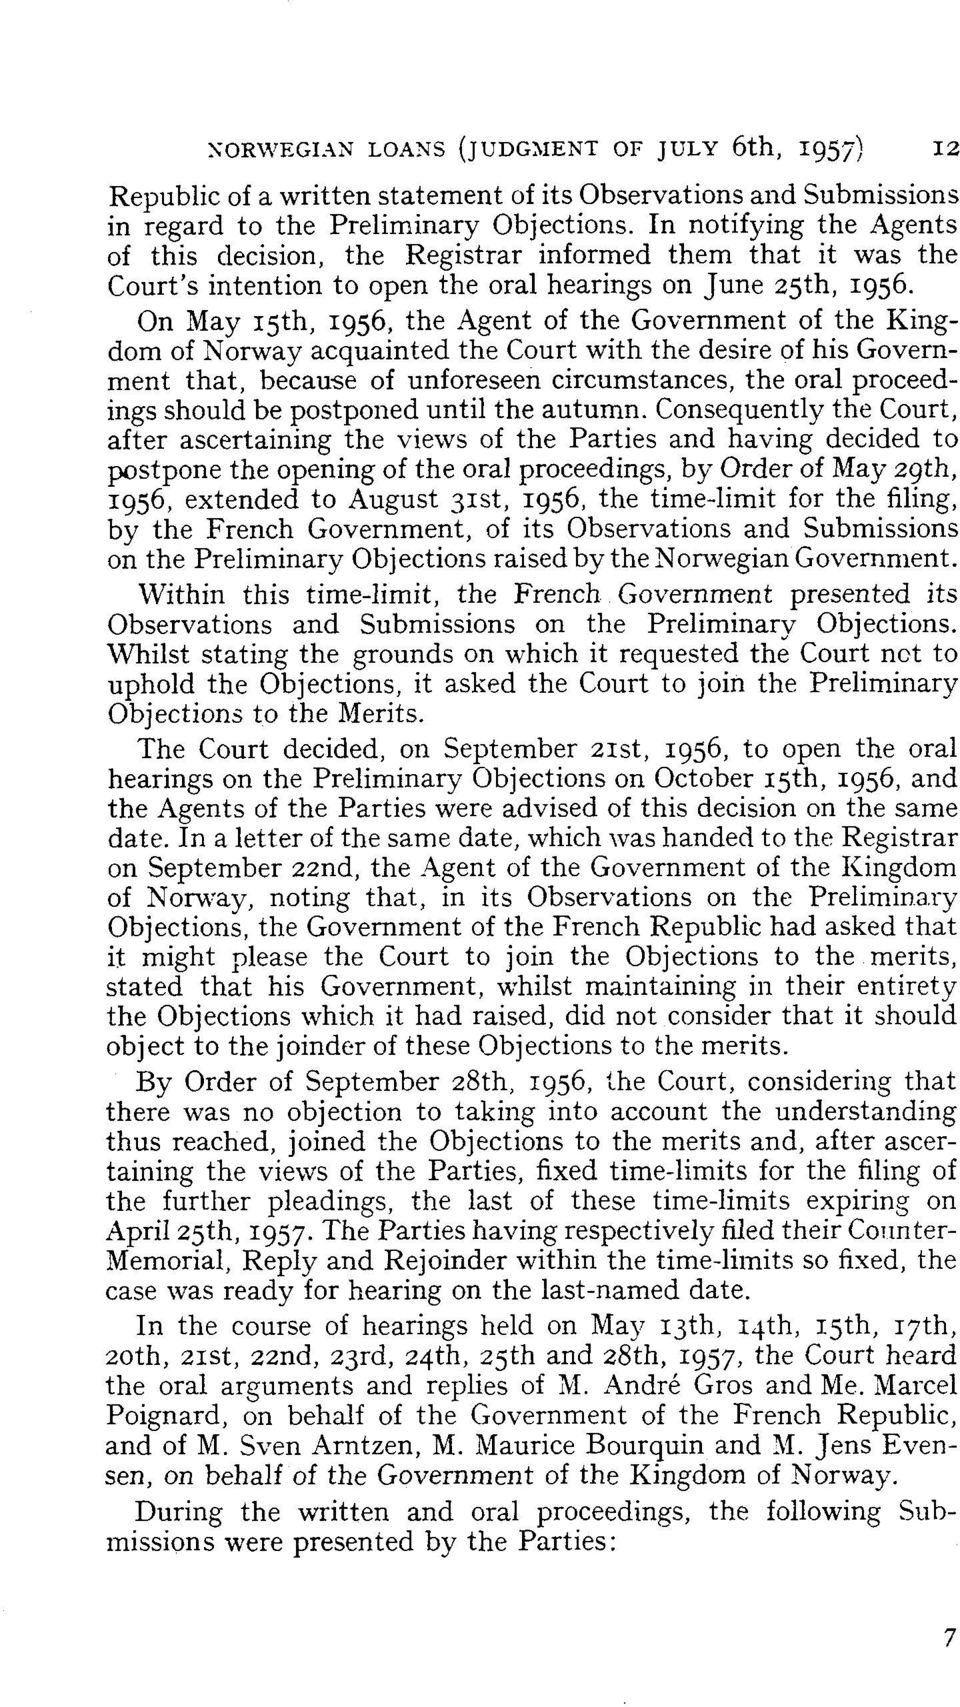 On May 15th, 1956, the Agent of the Govemment of the Kingdom of Norway acquainted the Court with the desire of his Government that, because of unforeseen circumstances, the oral proceedings should be